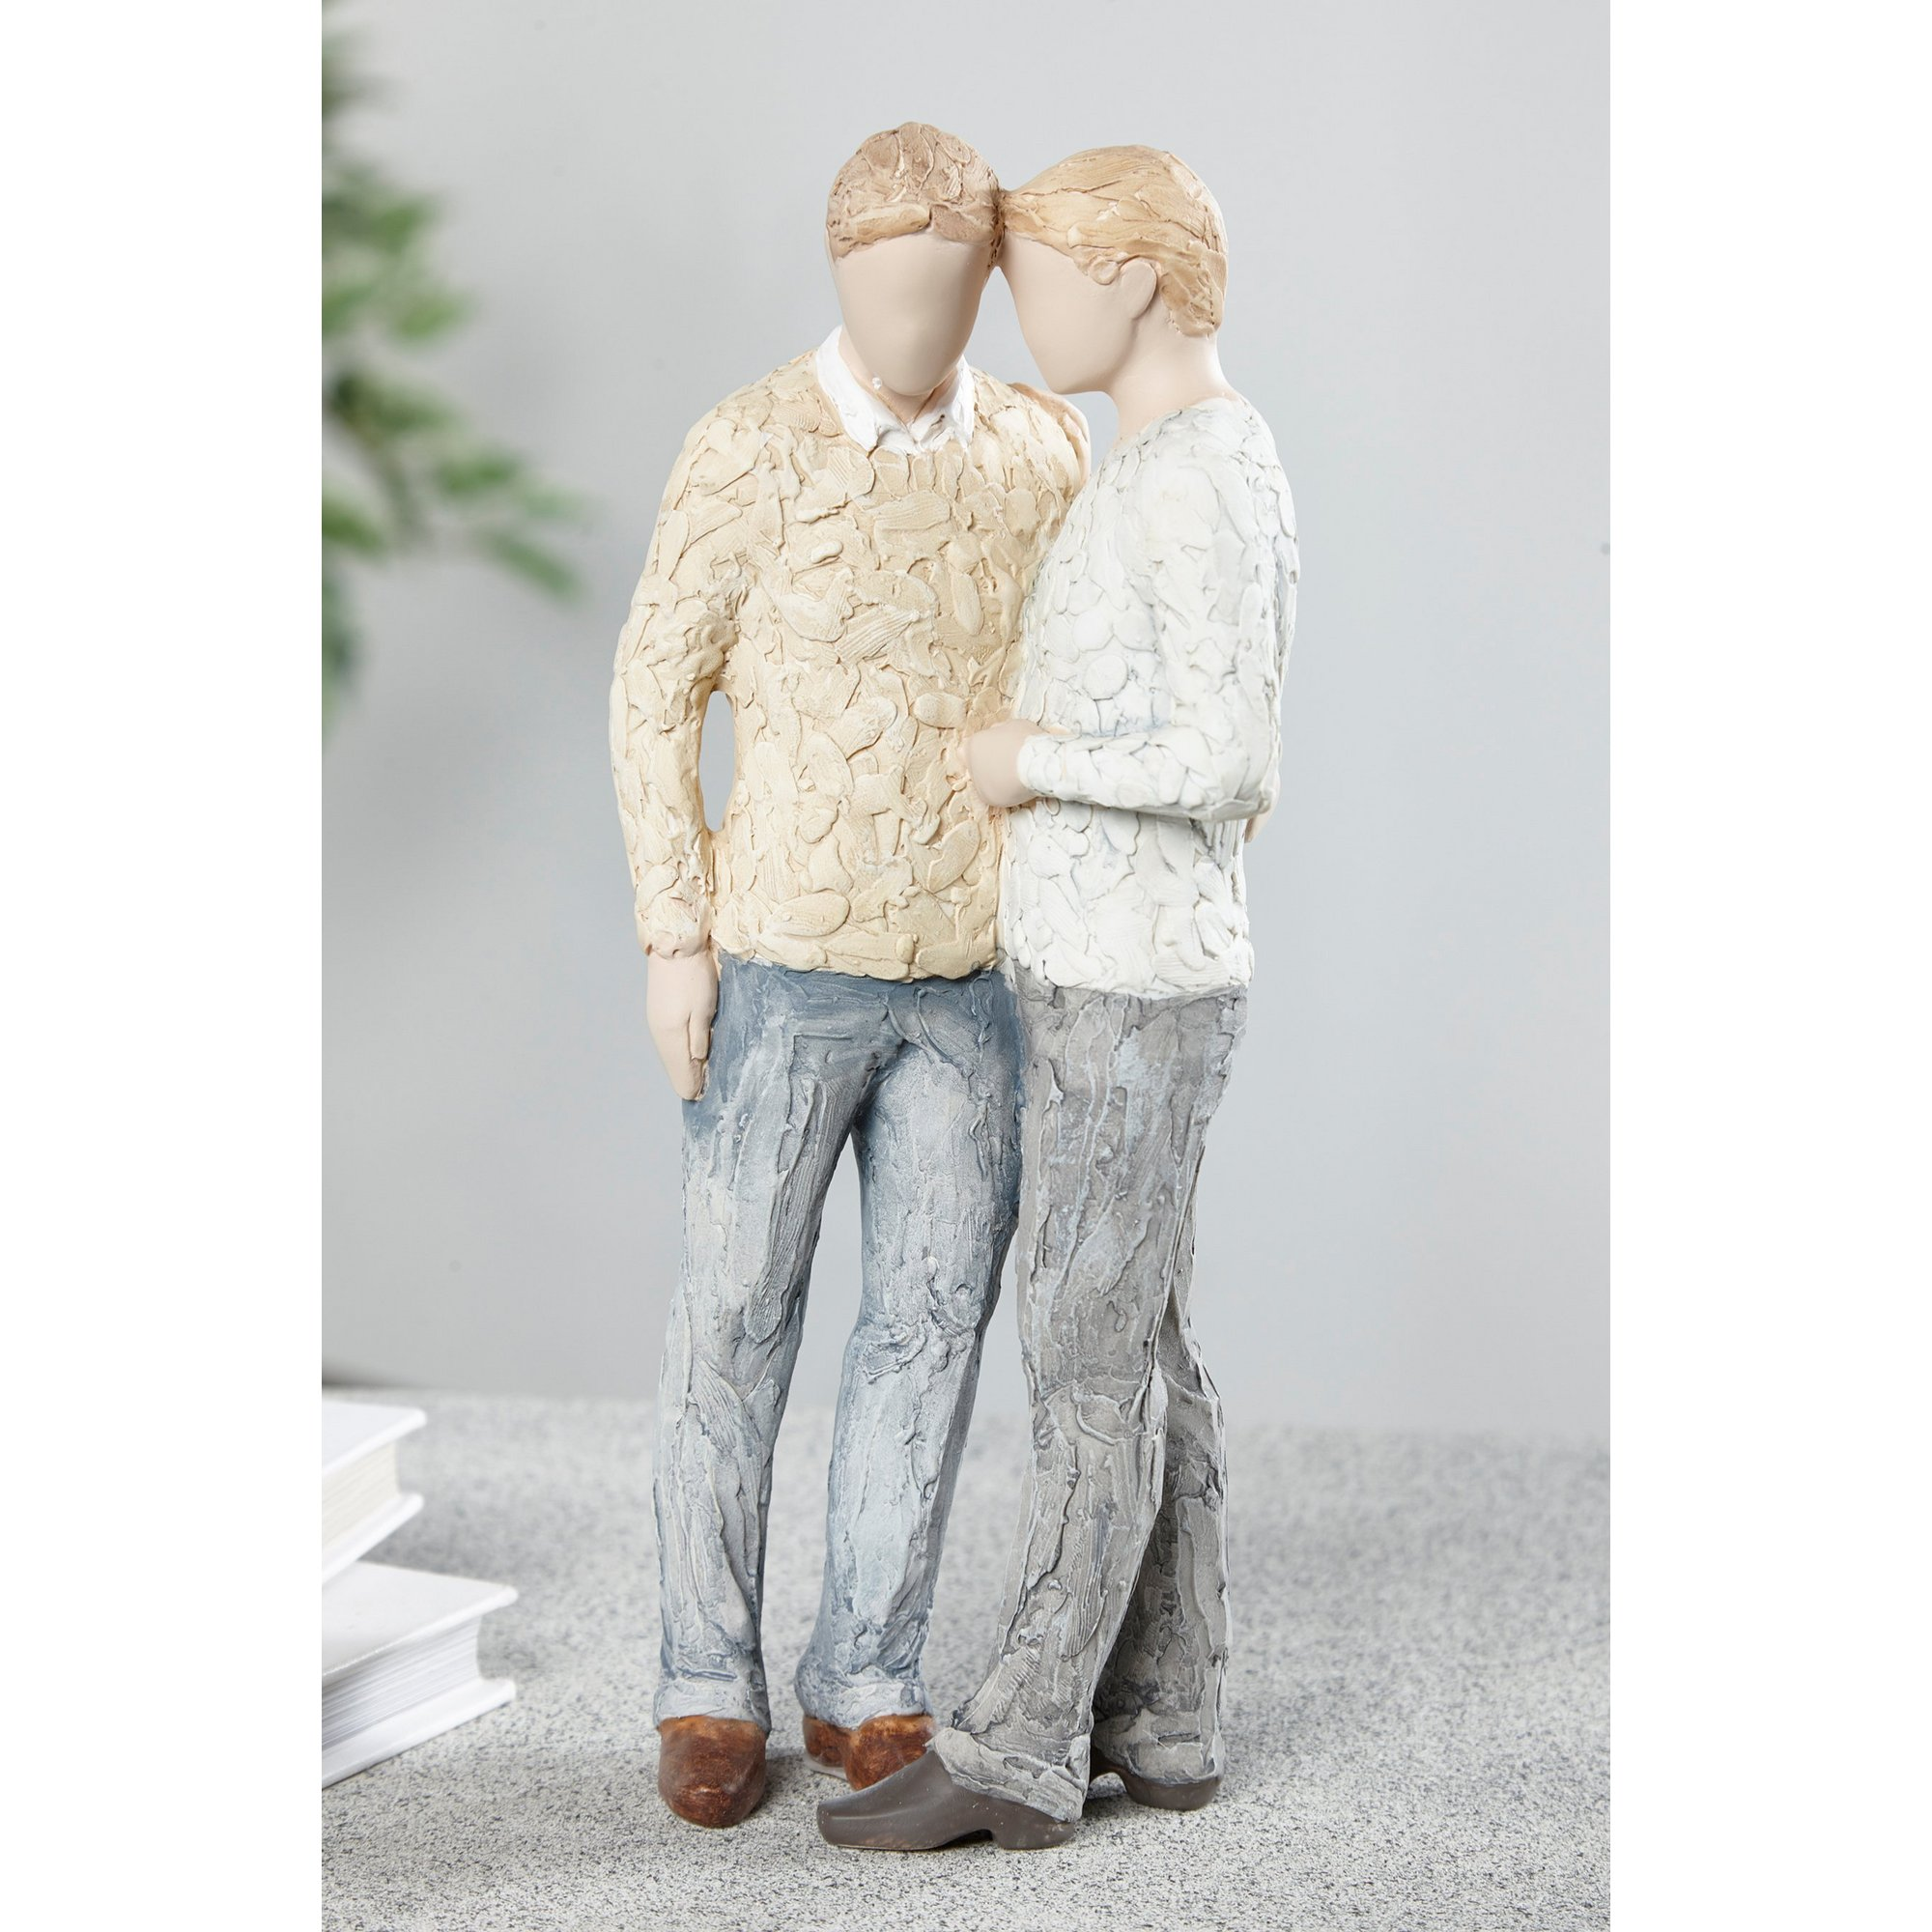 Image of More Than Words Devoted Figurine